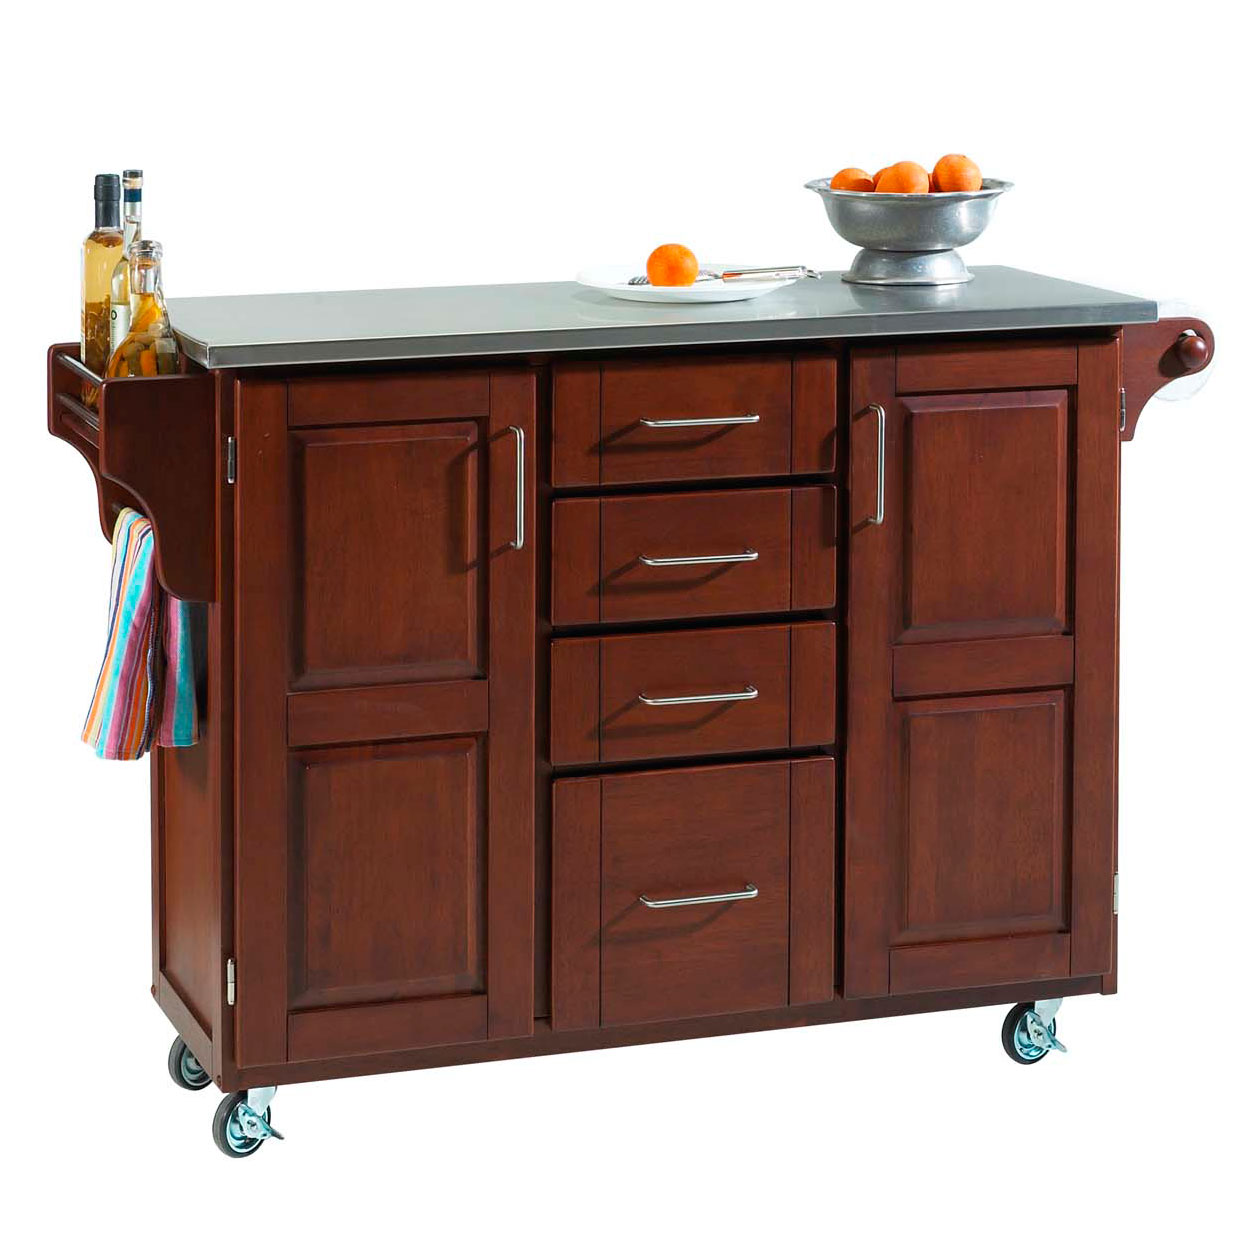 Large Cherry Finish Create a Cart with Stainless Steel Top, CHERRY STAINLESS STEEL